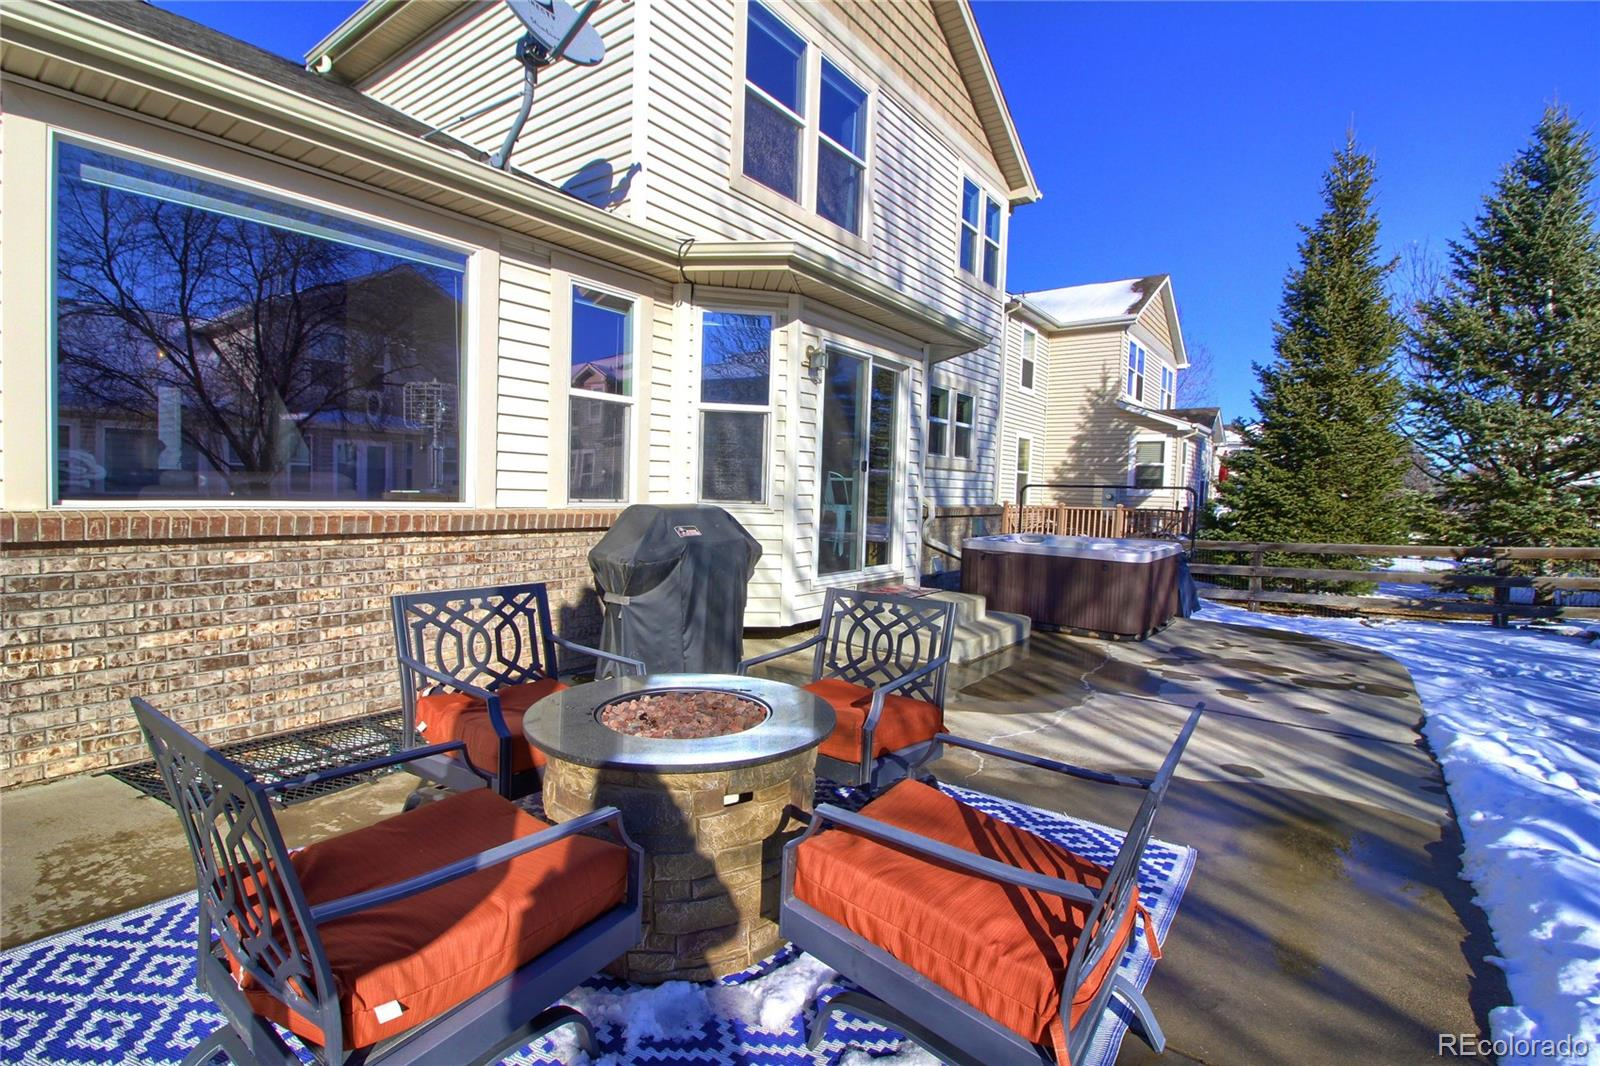 MLS# 3161208 - 29 - 1068 W 135th Court, Westminster, CO 80234